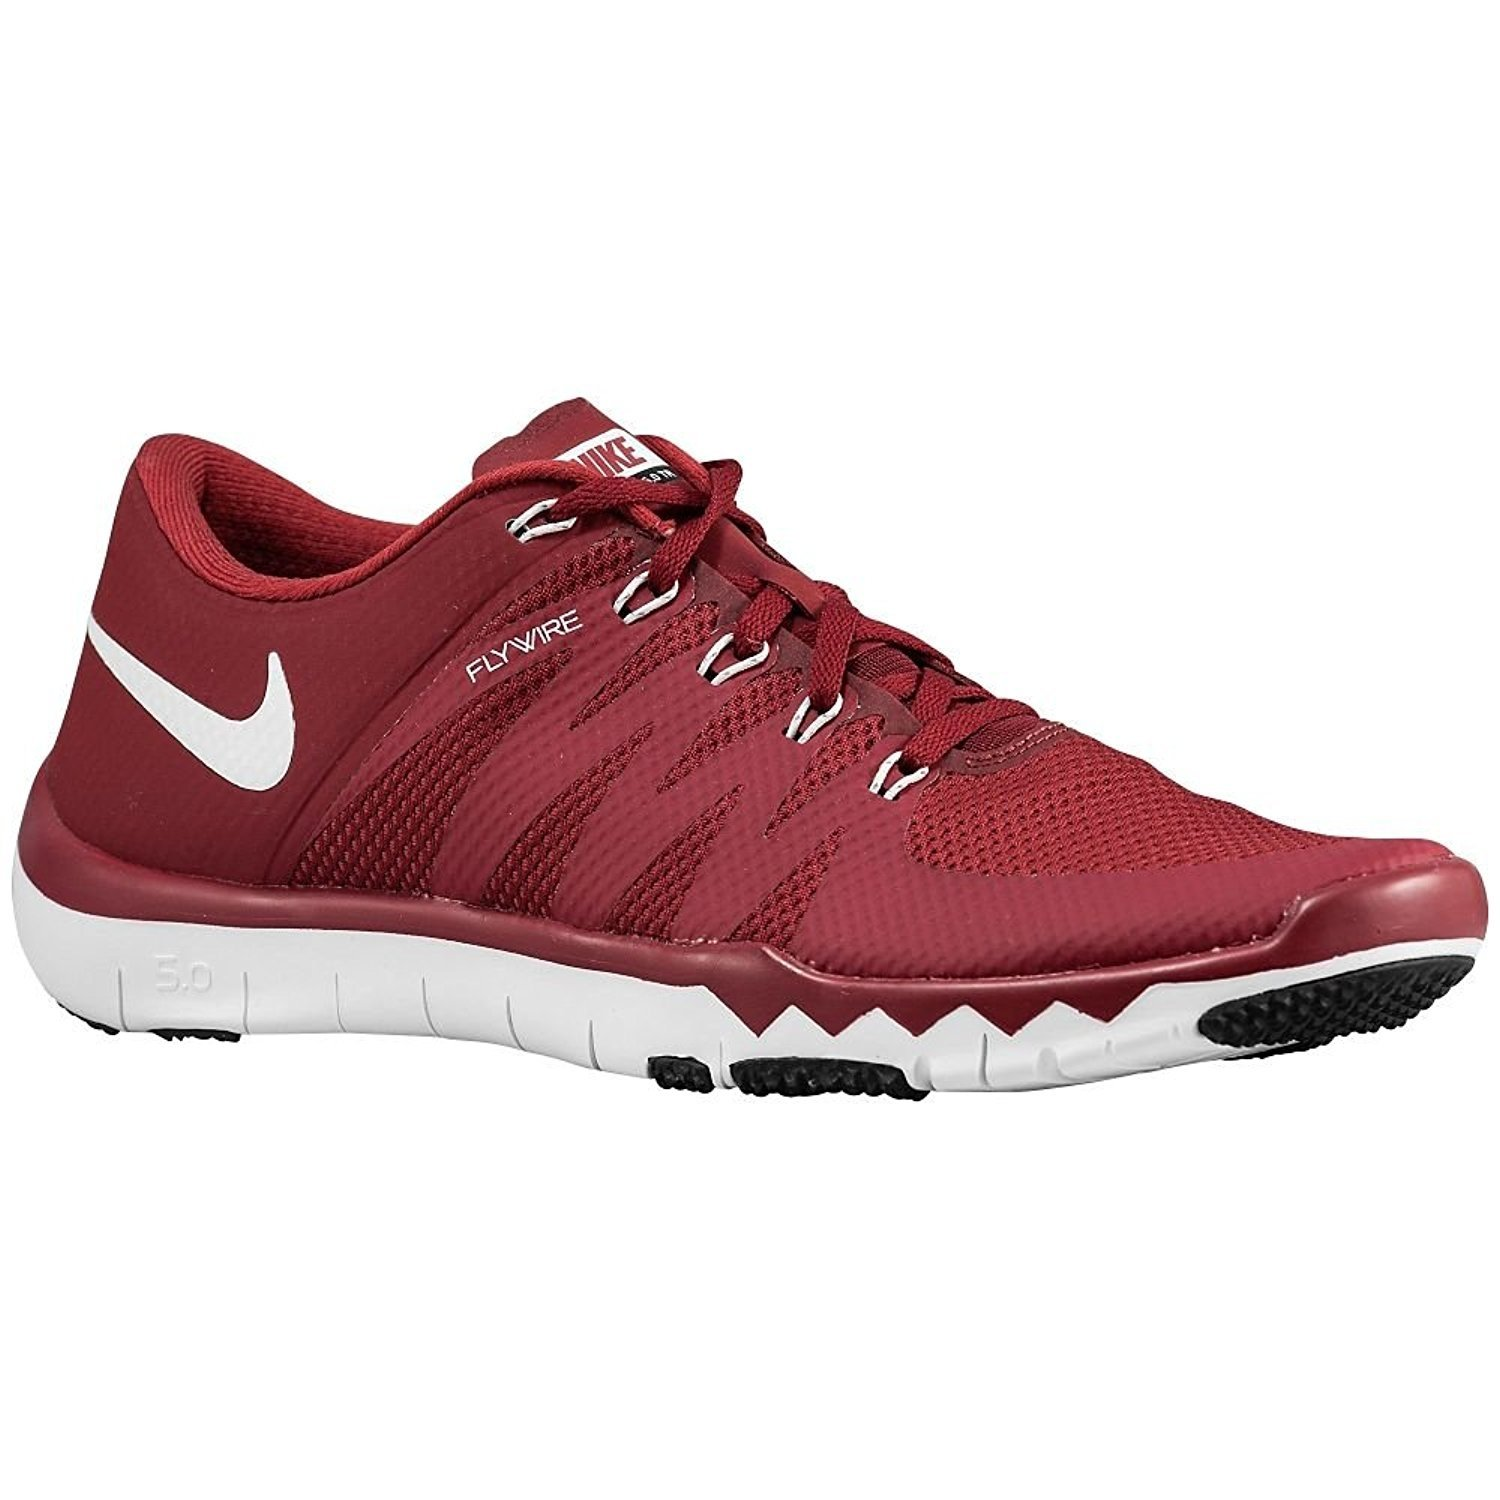 dab2ac073fa6f Galleon - Nike Men s Free Trainer 5.0 V6 Trainer Shoes (18 D(M) US ...